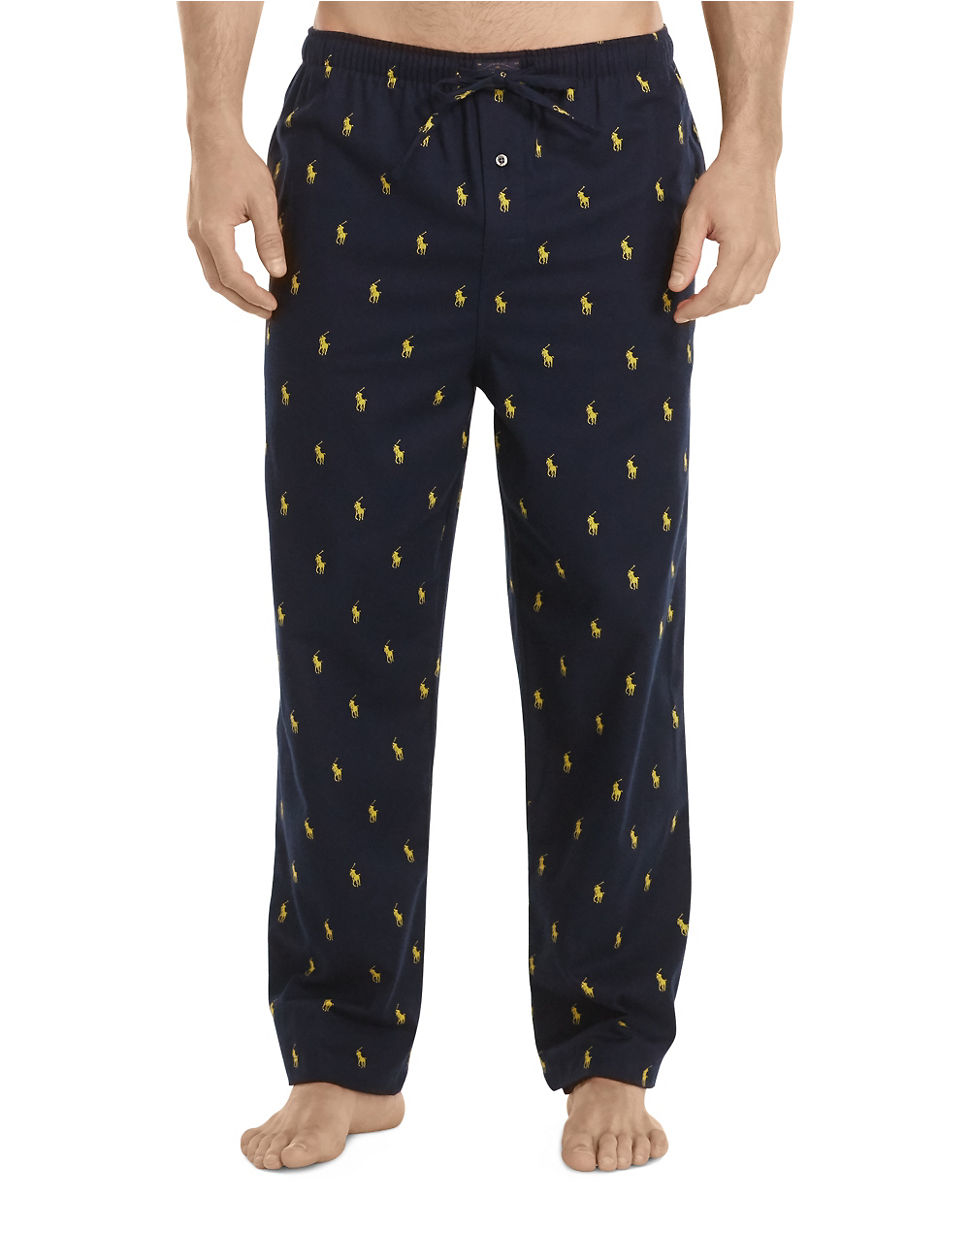 Polo ralph lauren Big & Tall Flannel Pajama Pants in Blue